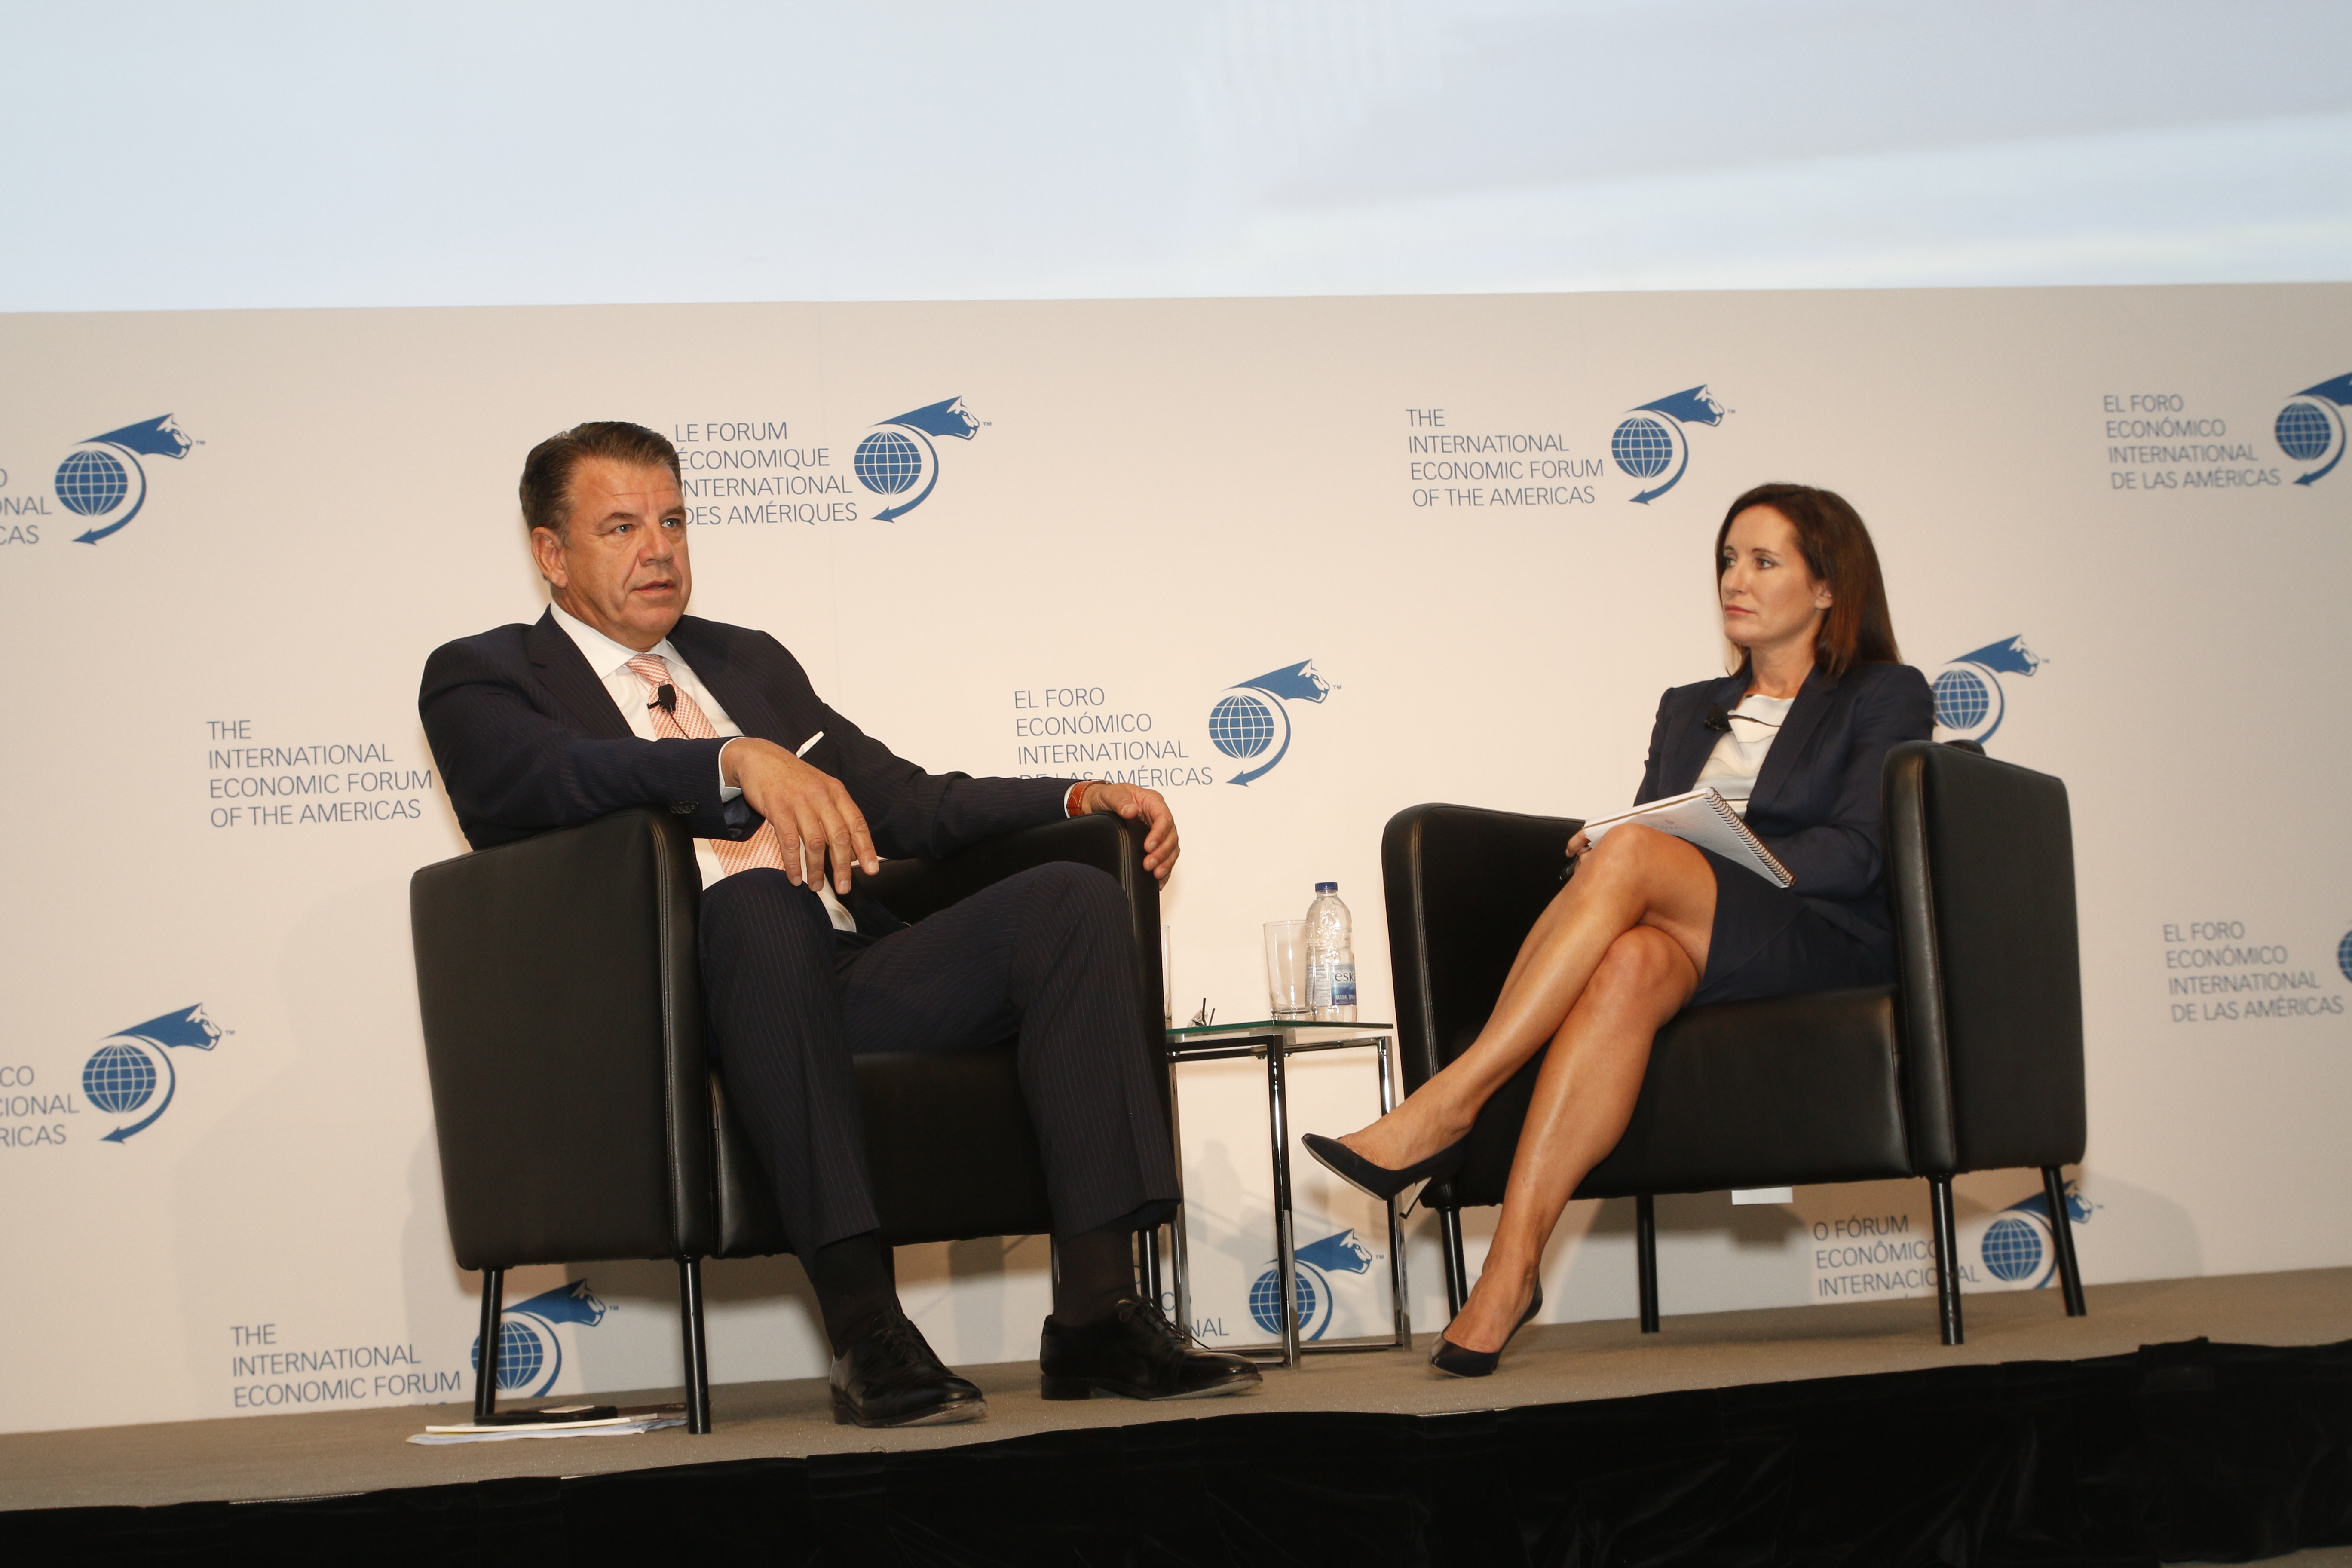 Hikmet Ersek, President and Chief Executive Officer, Western Union, interviewed by Amanda Lang, Business Journalist and Author